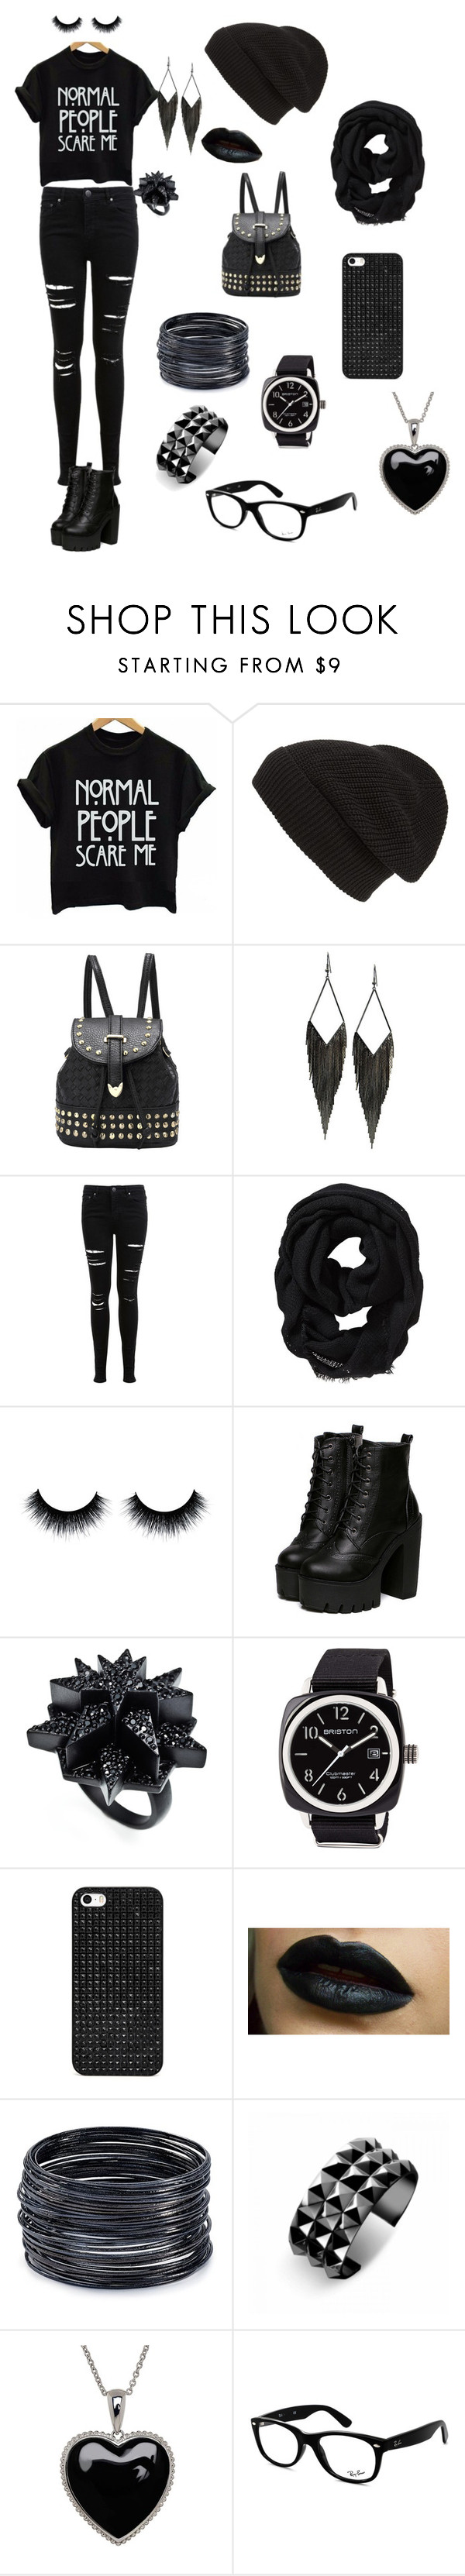 """""""Black outfit"""" by jenabbyreid on Polyvore featuring Phase 3, GUESS, Miss Selfridge, Old Navy, Eddie Borgo, Briston, BaubleBar, ABS by Allen Schwartz, Waterford and Lord & Taylor"""